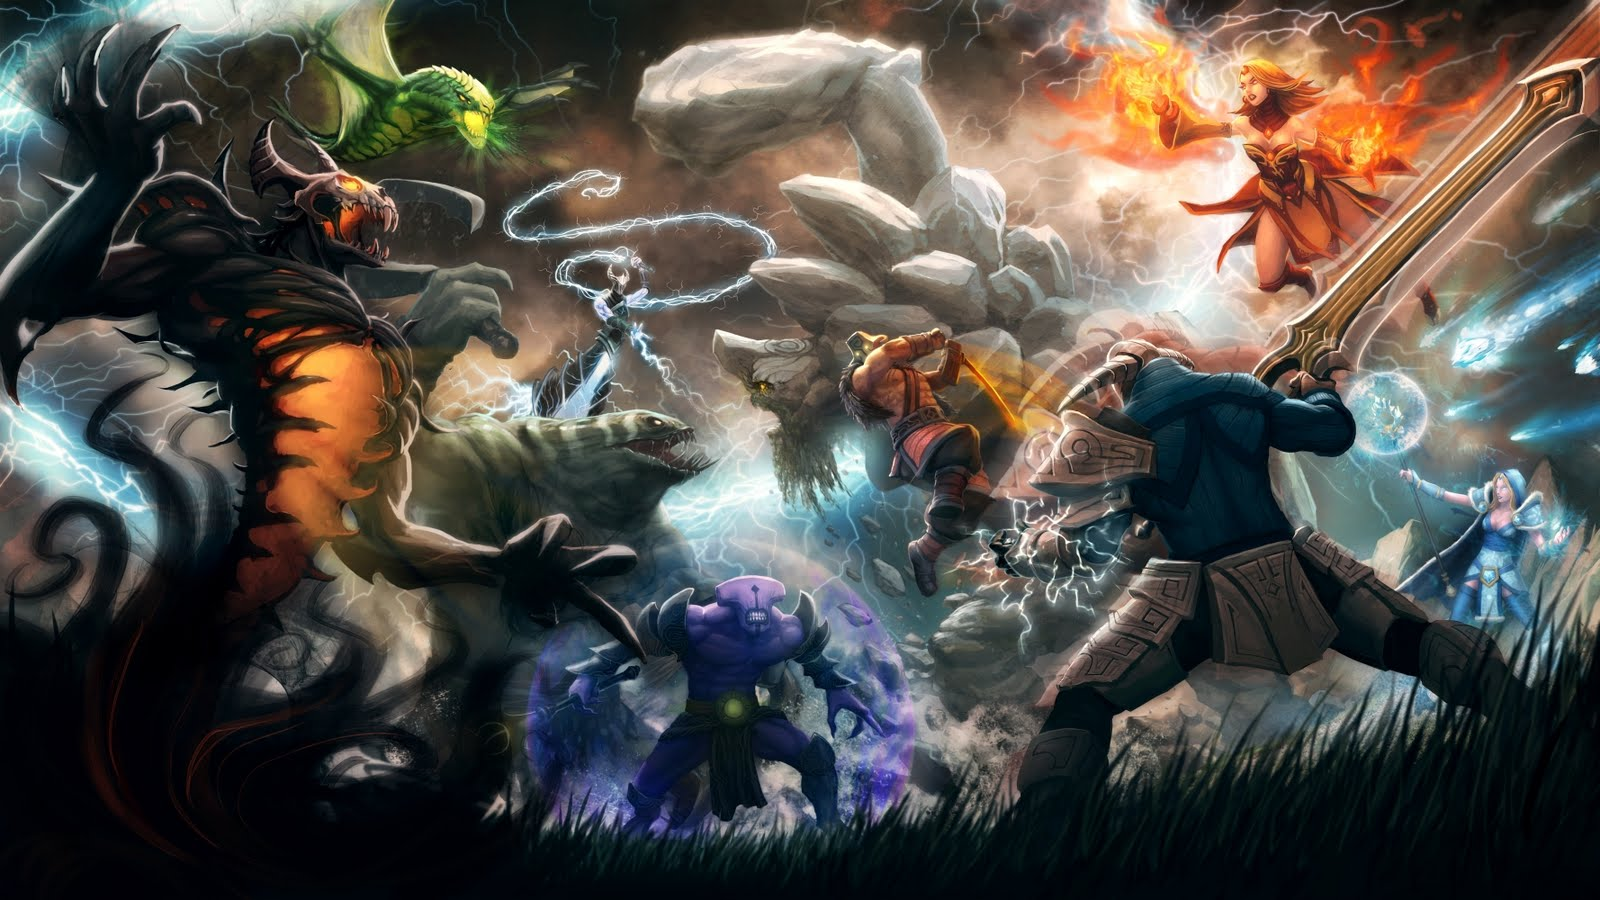 dota 2 game background - photo #49